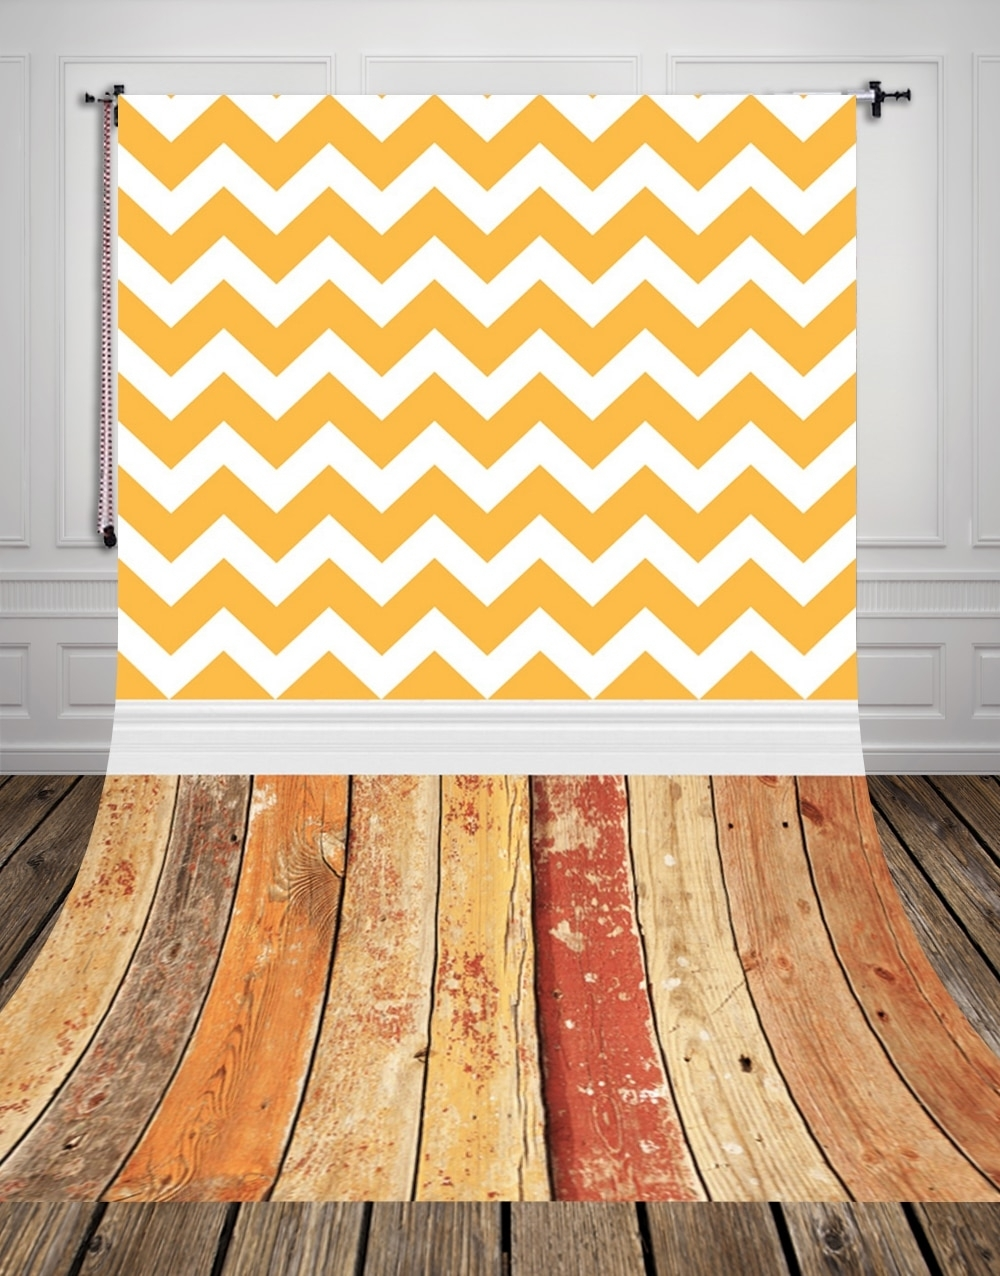 Huayi Vintage Wood Floor Backdrop Vintage Yellow Chevron Wall Art Inside Most Up To Date Chevron Wall Art (View 18 of 20)